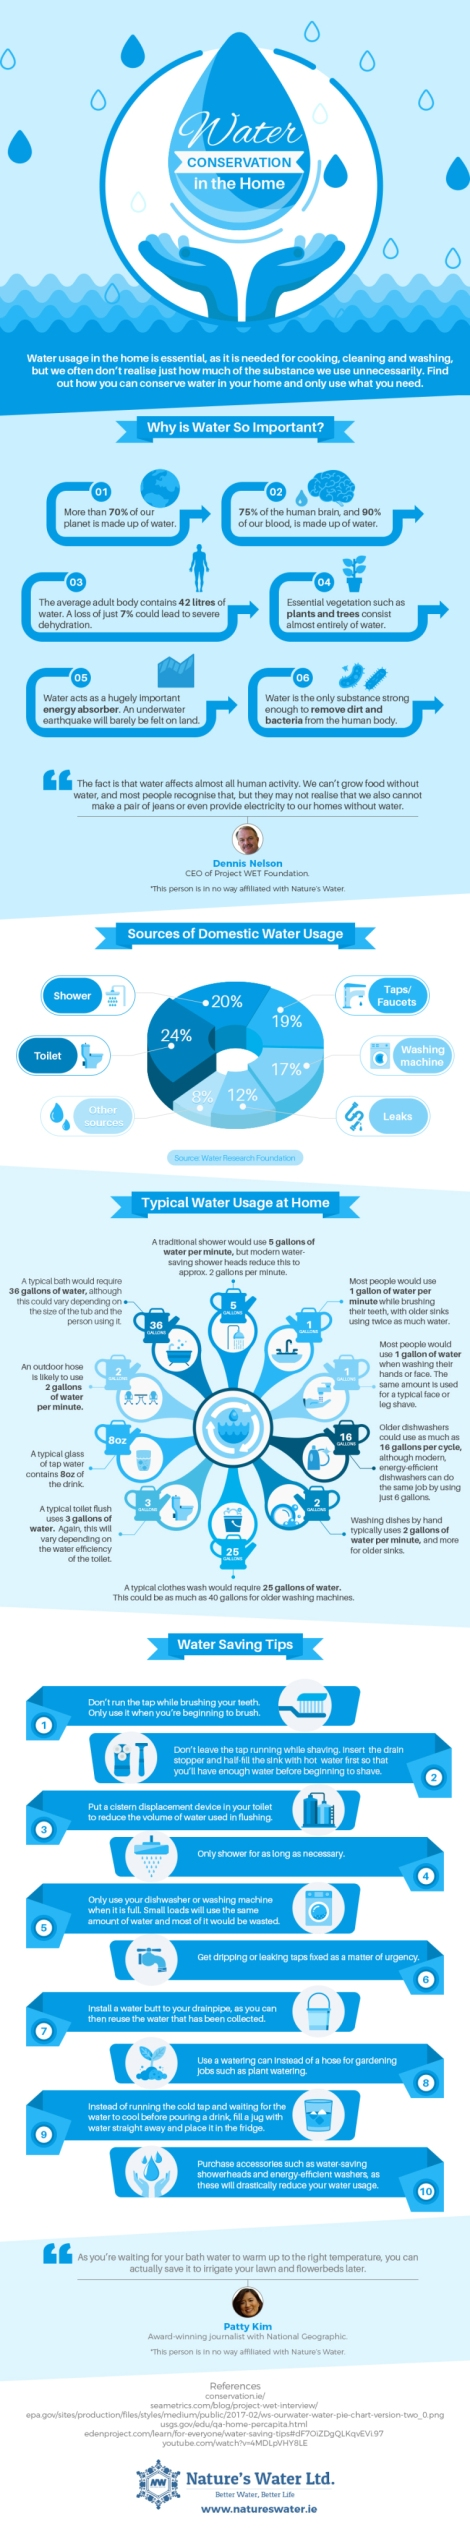 water-conservation-in-the-home-infographic